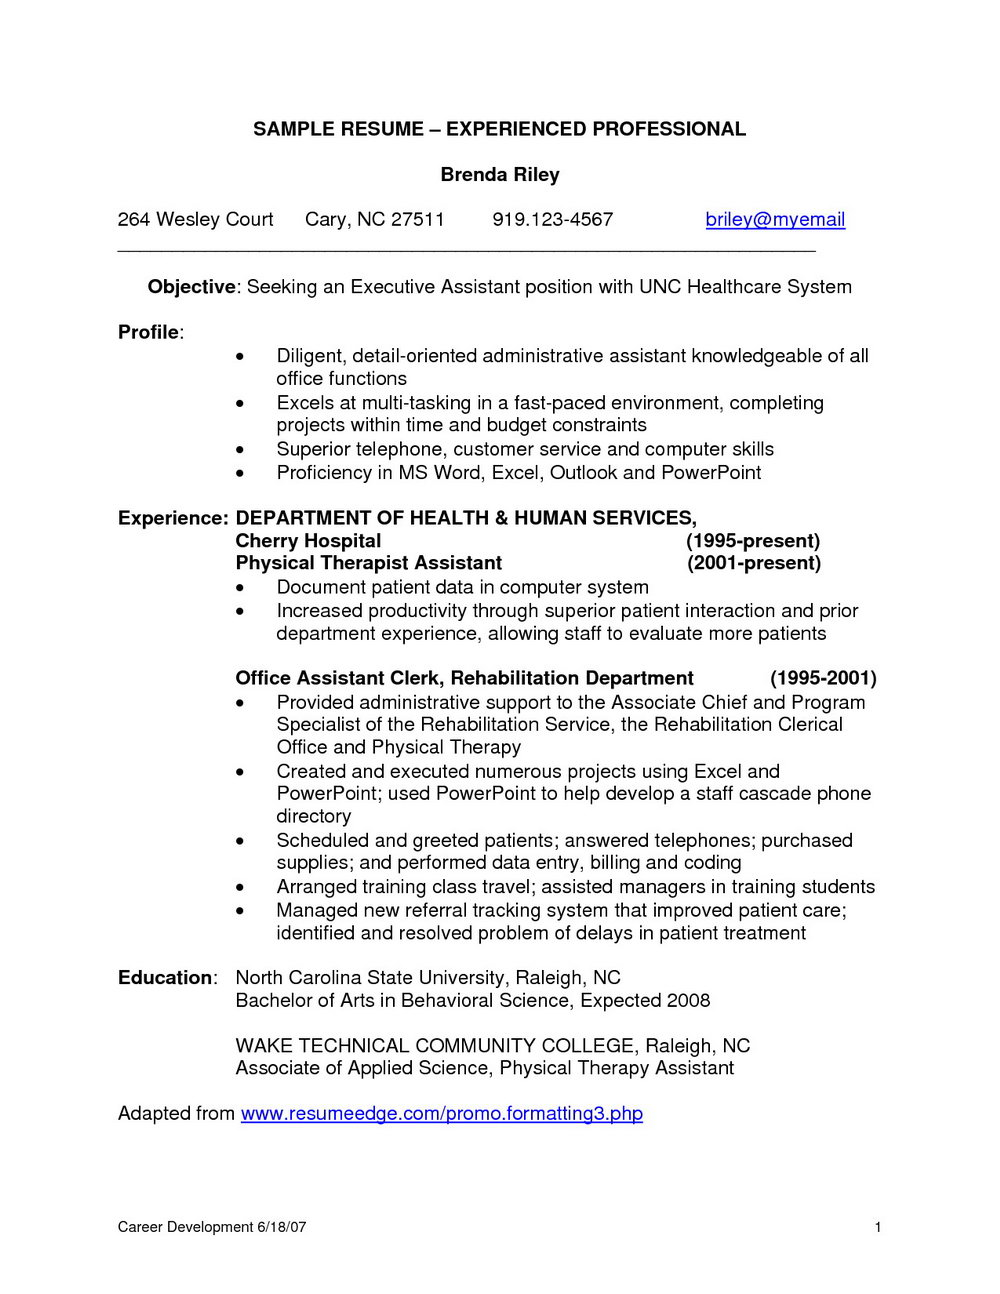 Resume Samples For Experienced Banking Professionals